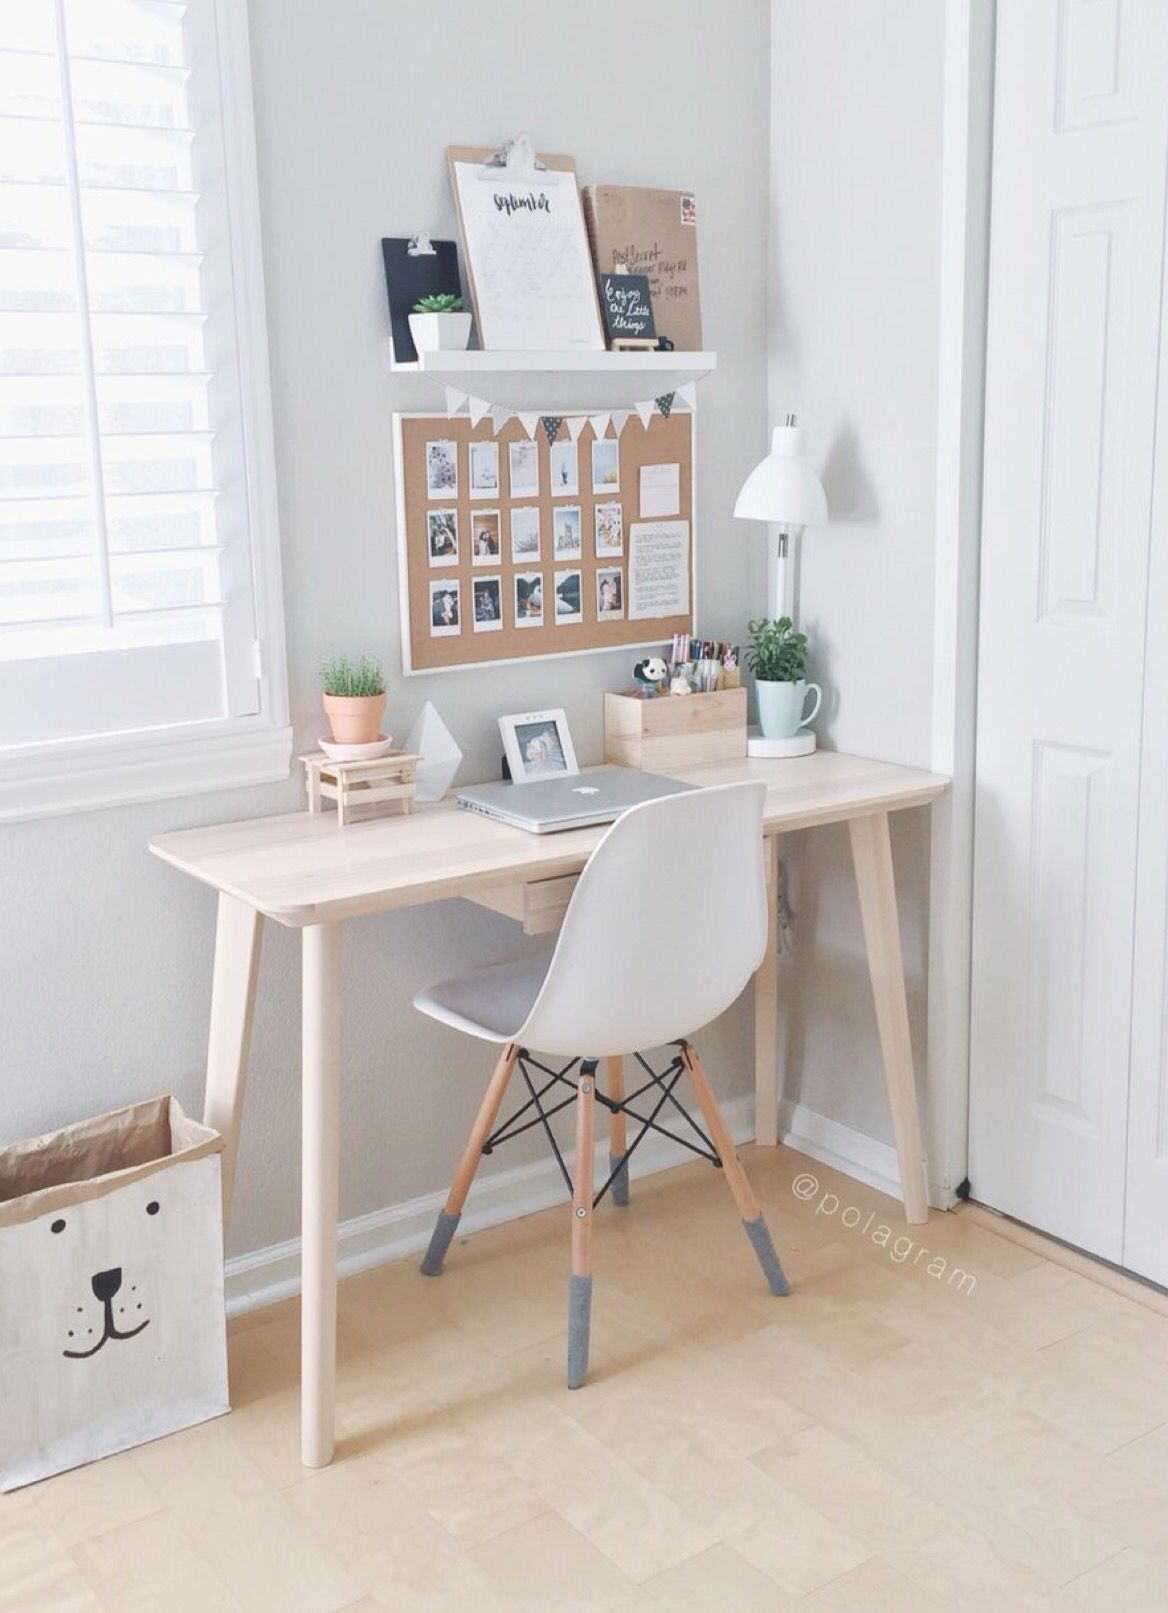 Pingl par kristen sur work space pinterest appartements for Bureau cocooning